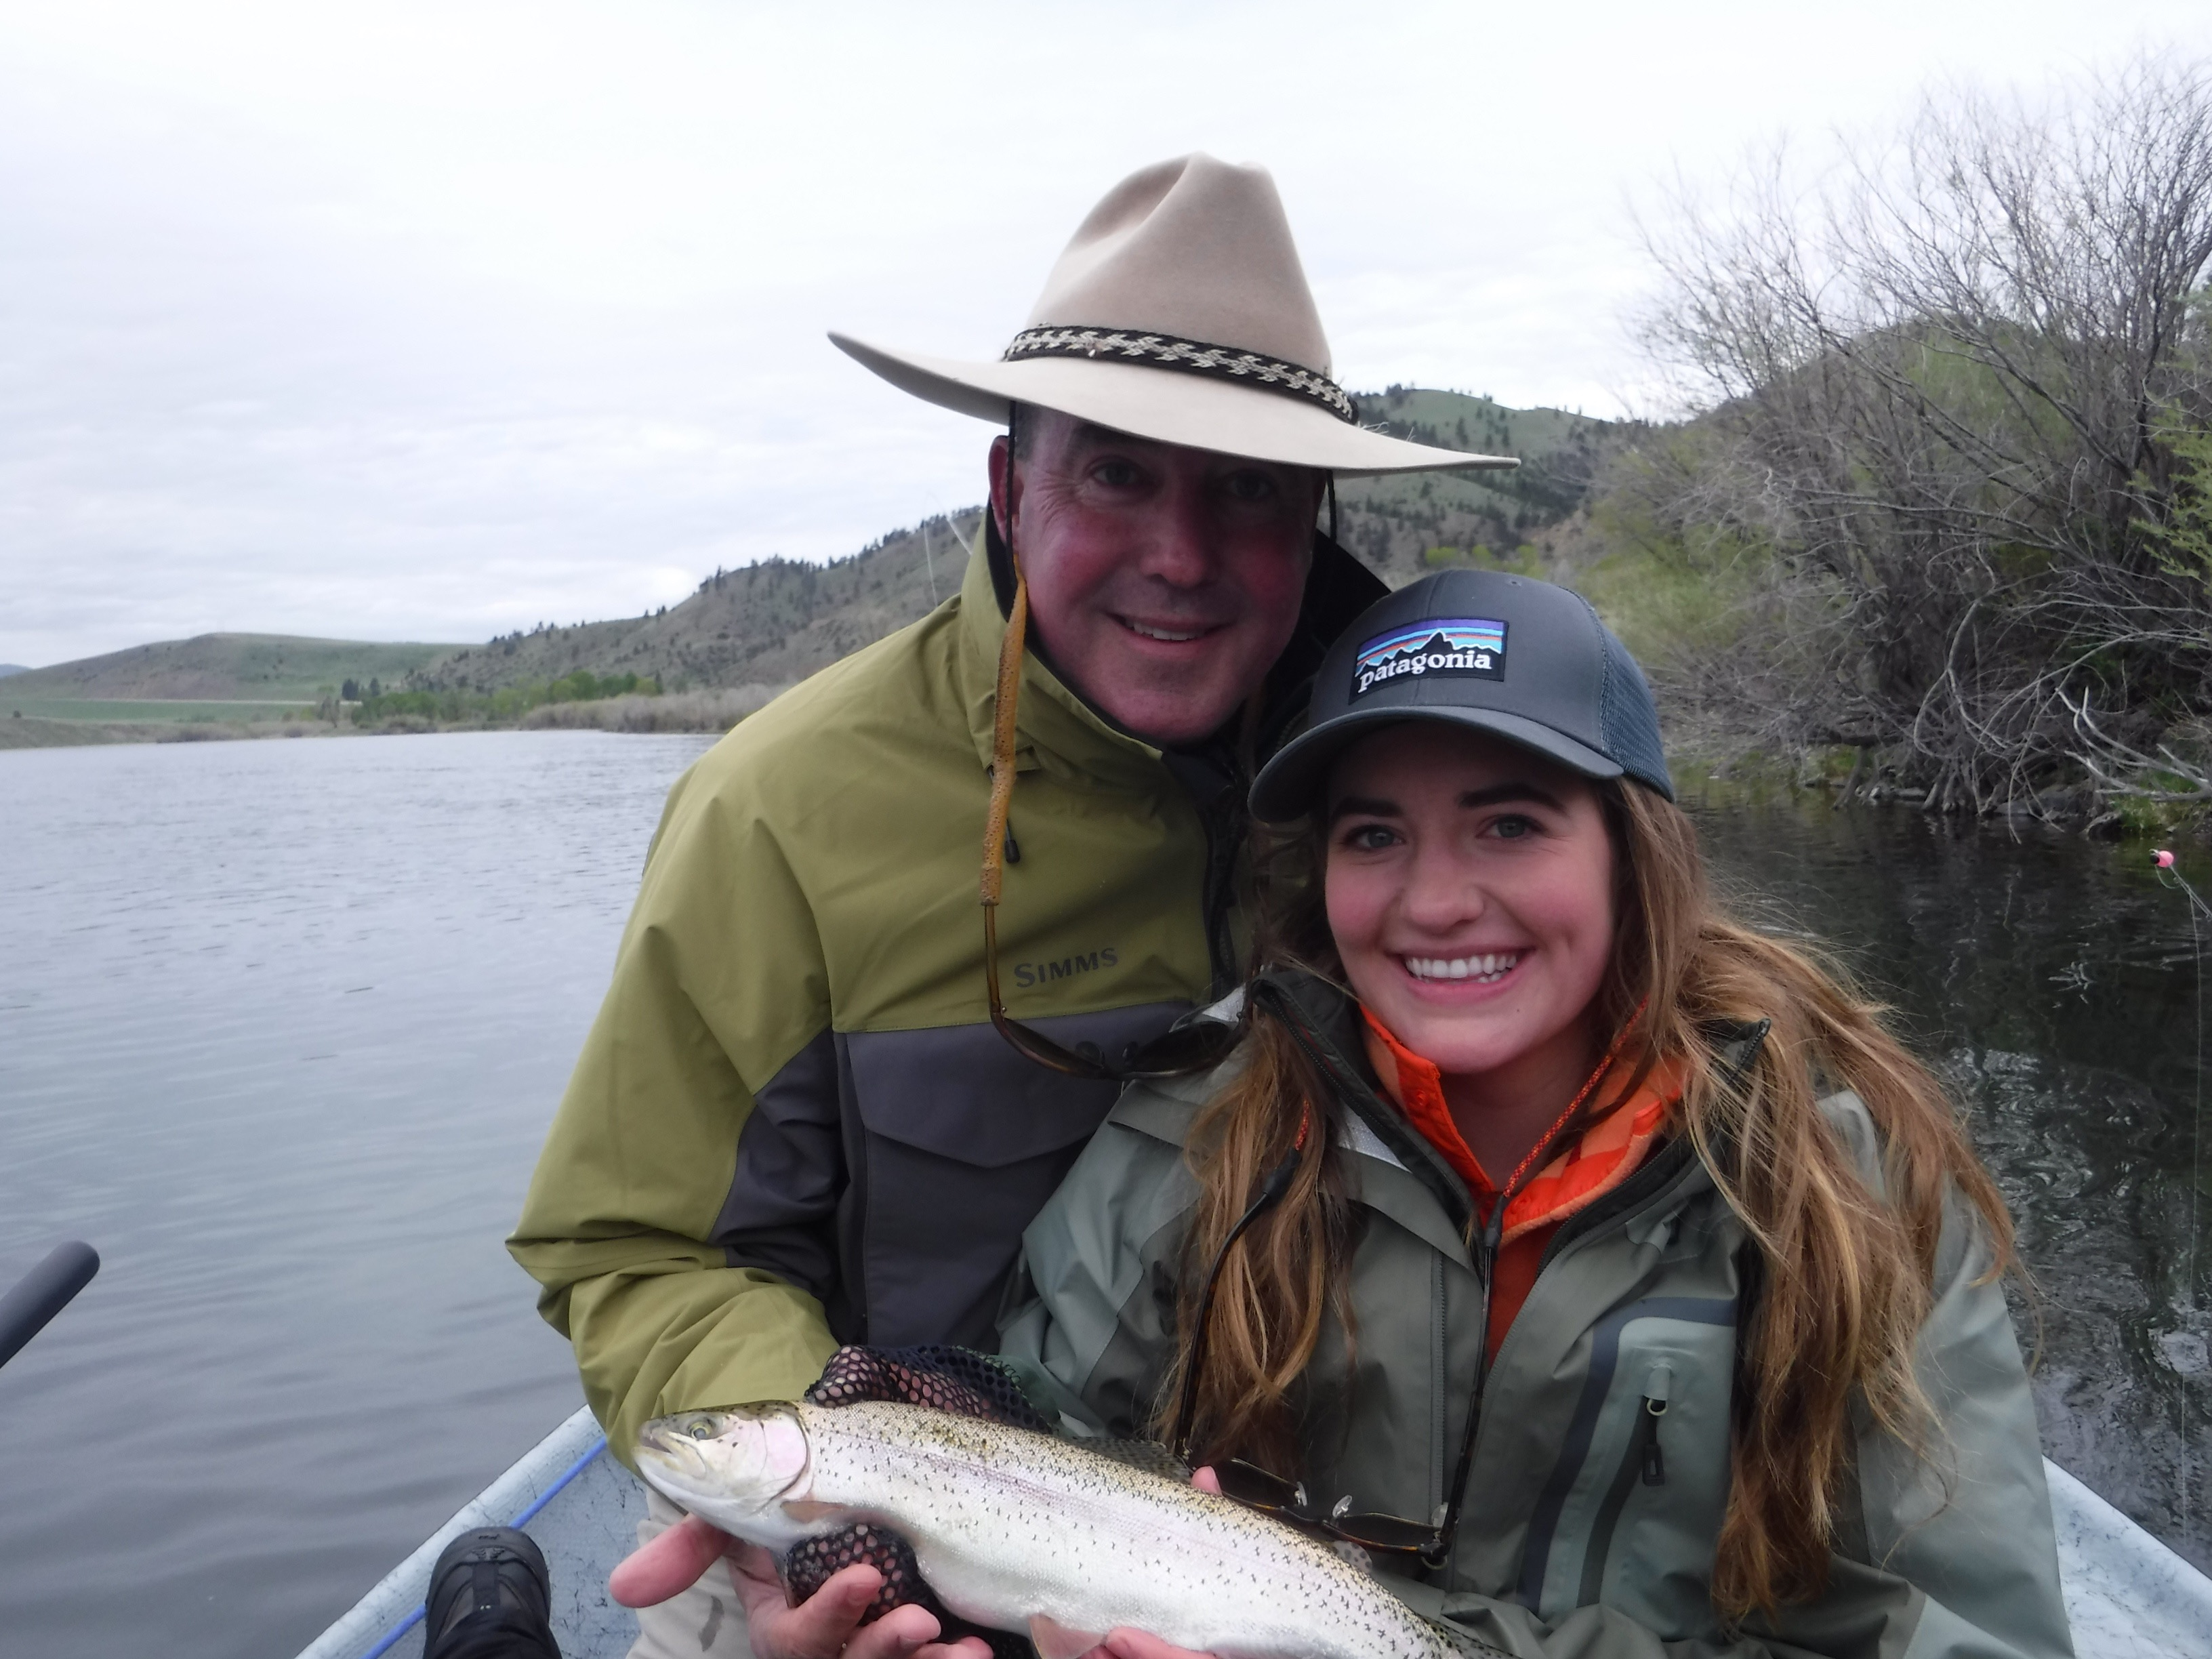 John and daughter Ellie were all smiles for a couple of wet days on the MO'.